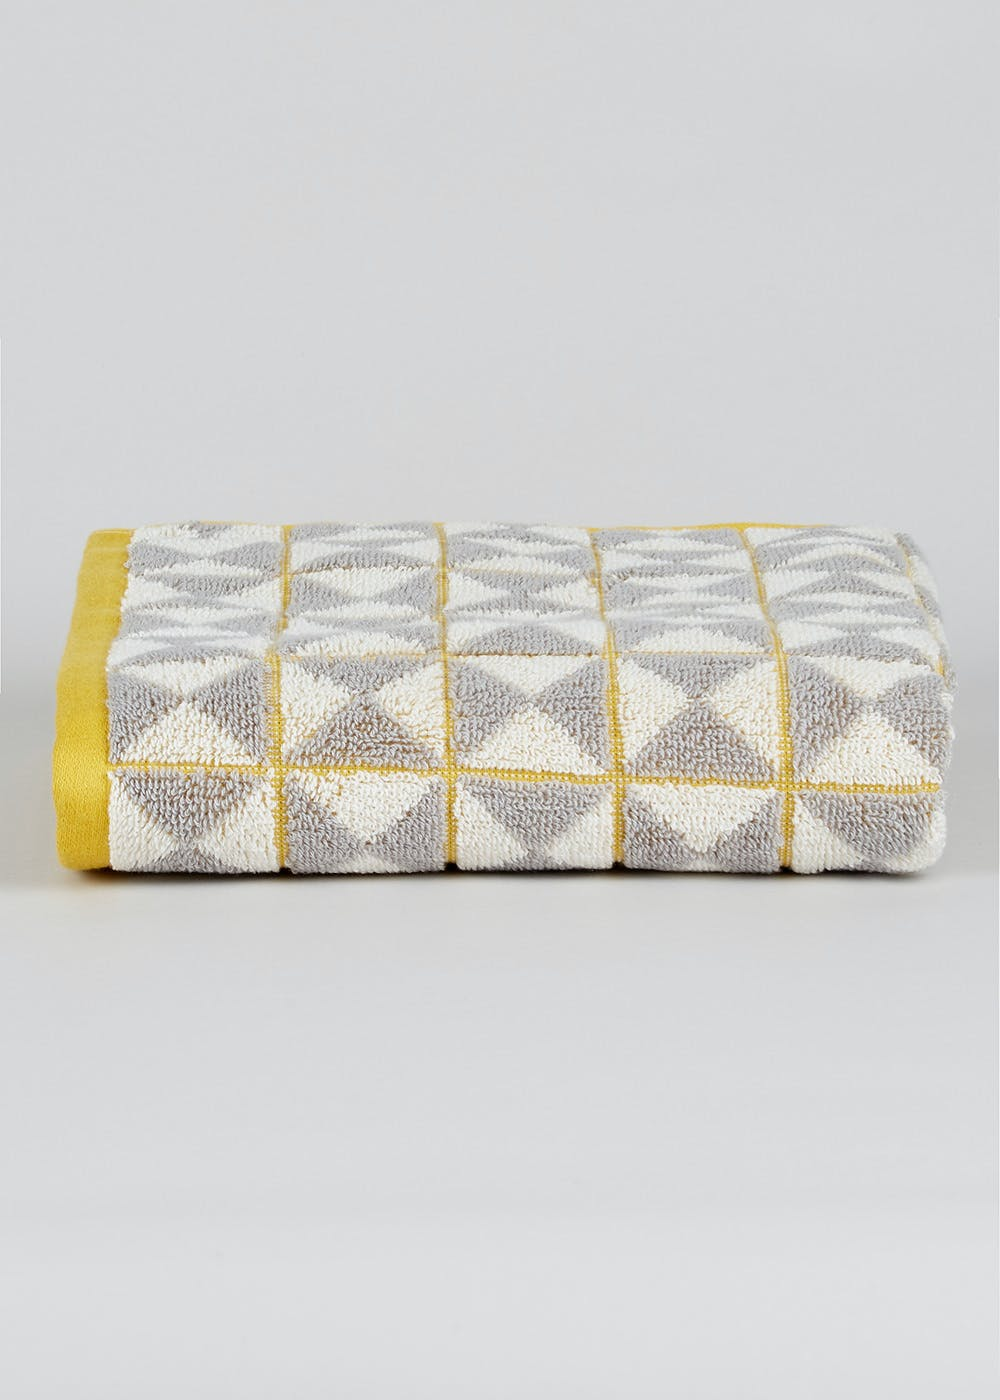 Dollar Days offers wholesale and closeout home decor items including kitchen towels, kitchen linens, bulk kitchen decorated towels, pillows, bedding, furnishings, clocks, fountains, fans and rugs. Buy closeout home furnishings in bulk quantities. Visit WOW pricing and Closeout Corner categories for other great wholesaler deals on bulk bargains.